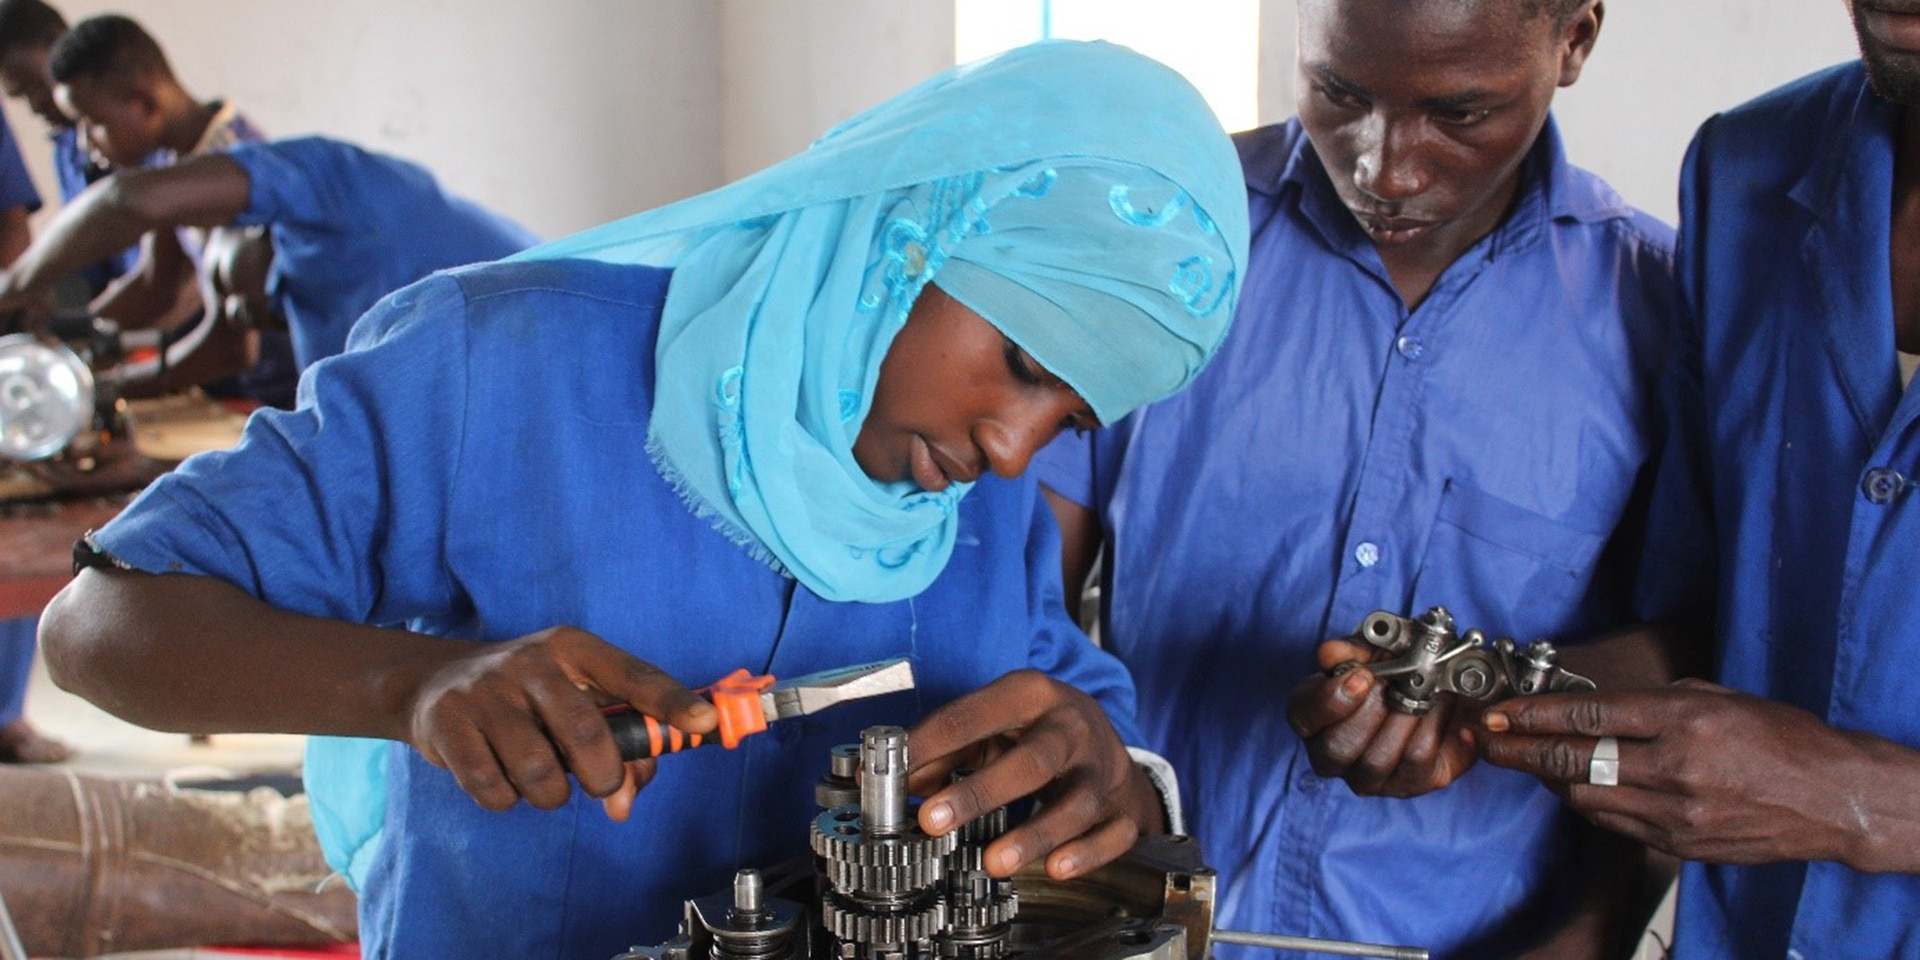 In a training workshop, a young woman with a head covering works on a mechanical component, observed by two male apprentices.